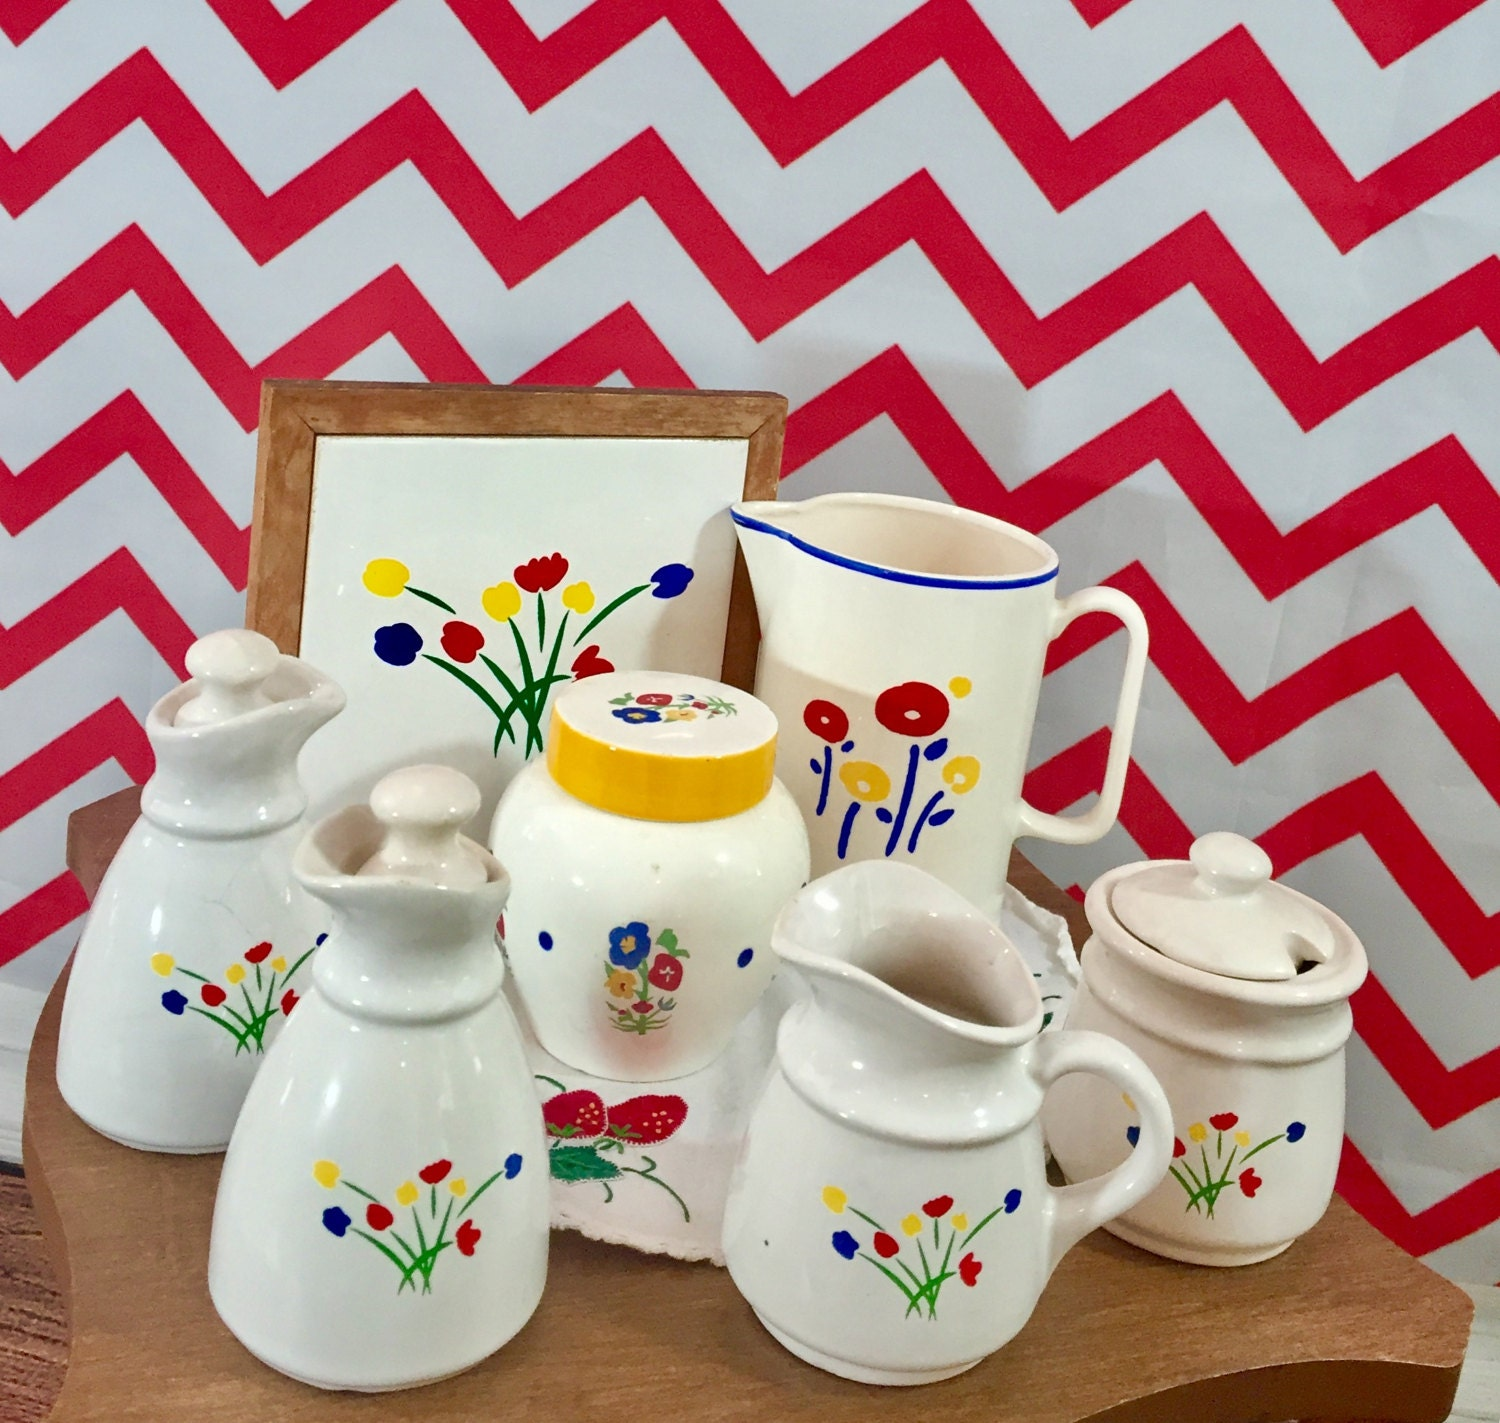 Vintage 1980s Kitchen Decor Lot Of Seven Tulip Dishes Primary Color Dining